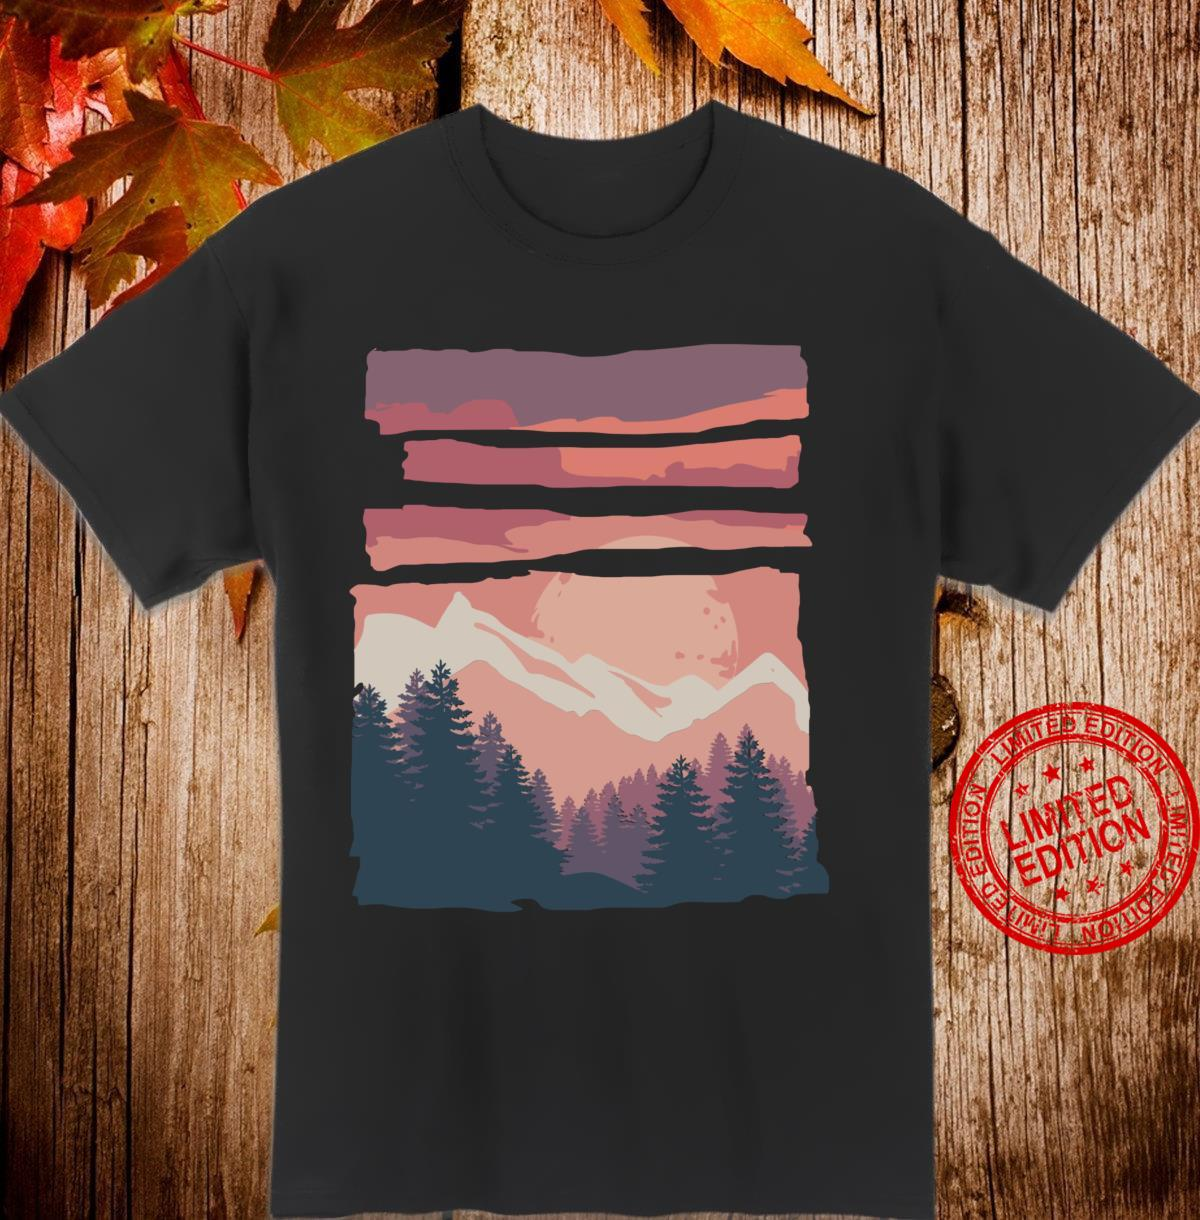 Hiking and outddooradventure pastell mountain sunset Shirt